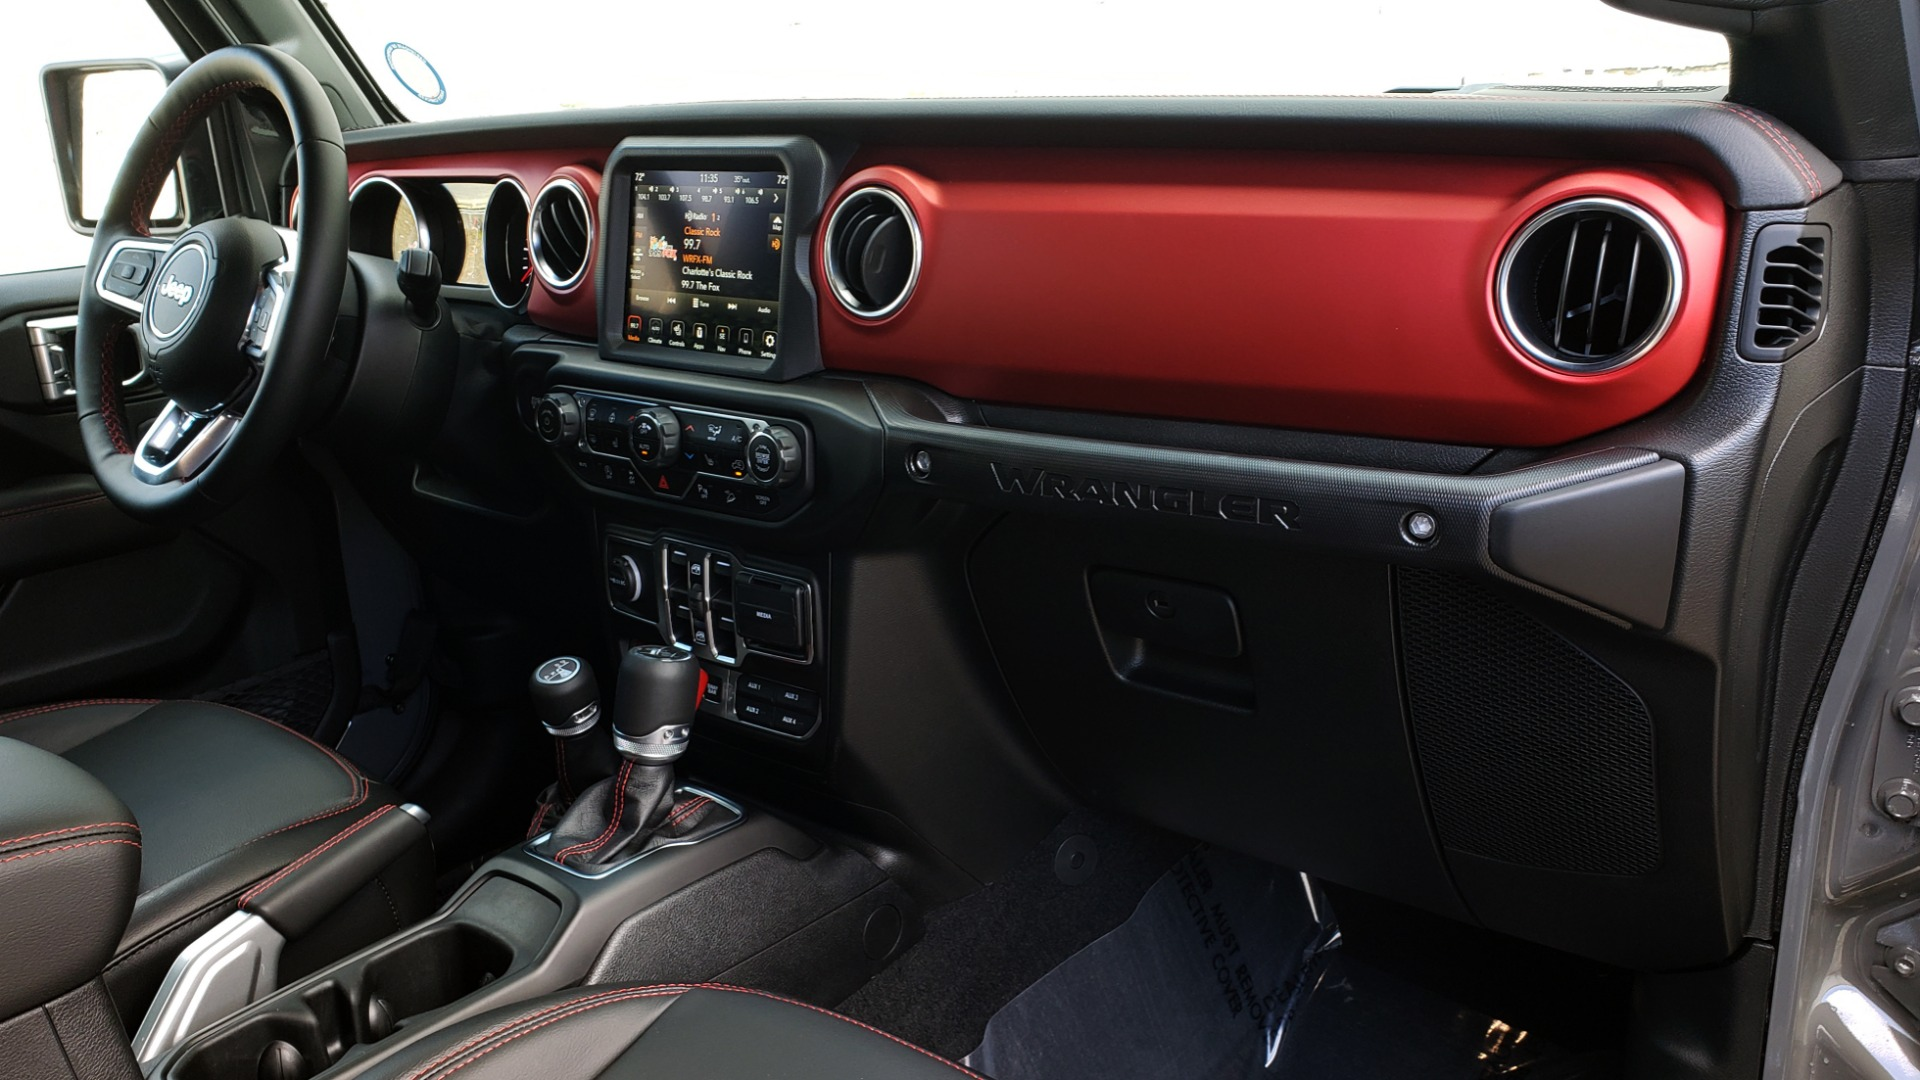 Used 2020 Jeep WRANGLER UNLIMITED RUBICON 4WD / POWER TOP / NAV / ALPINE / REARVIEW for sale Sold at Formula Imports in Charlotte NC 28227 83